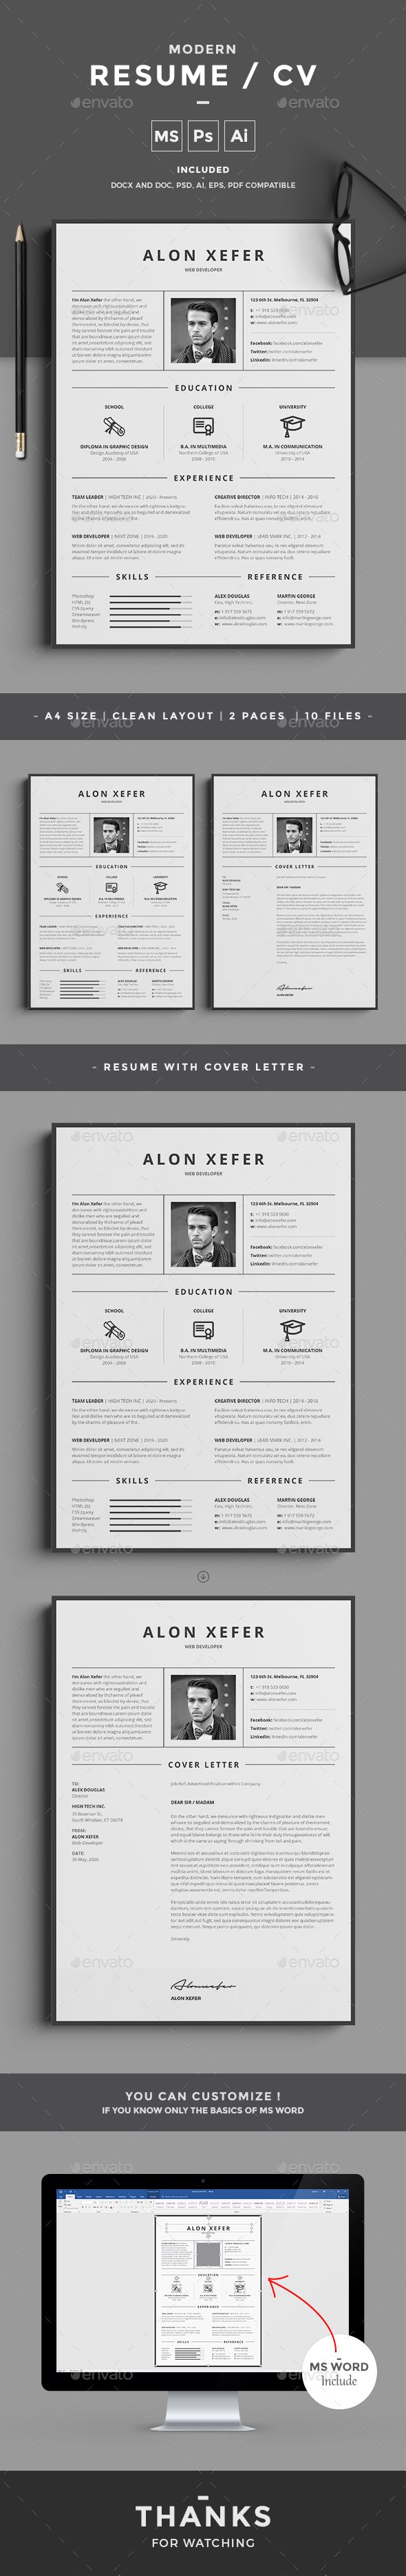 Qualification Summary Resume Resume  Resumes Stationery Download Here Httpsgraphicriver  Resume Application Pdf with Free Resume Maker Software Buy Resume By Designpark On Graphicriver Resume Word Template  Cv  Template With Super Clean And Modern Look Clean Resume Template Page  Designs Are Easy  Sample It Project Manager Resume